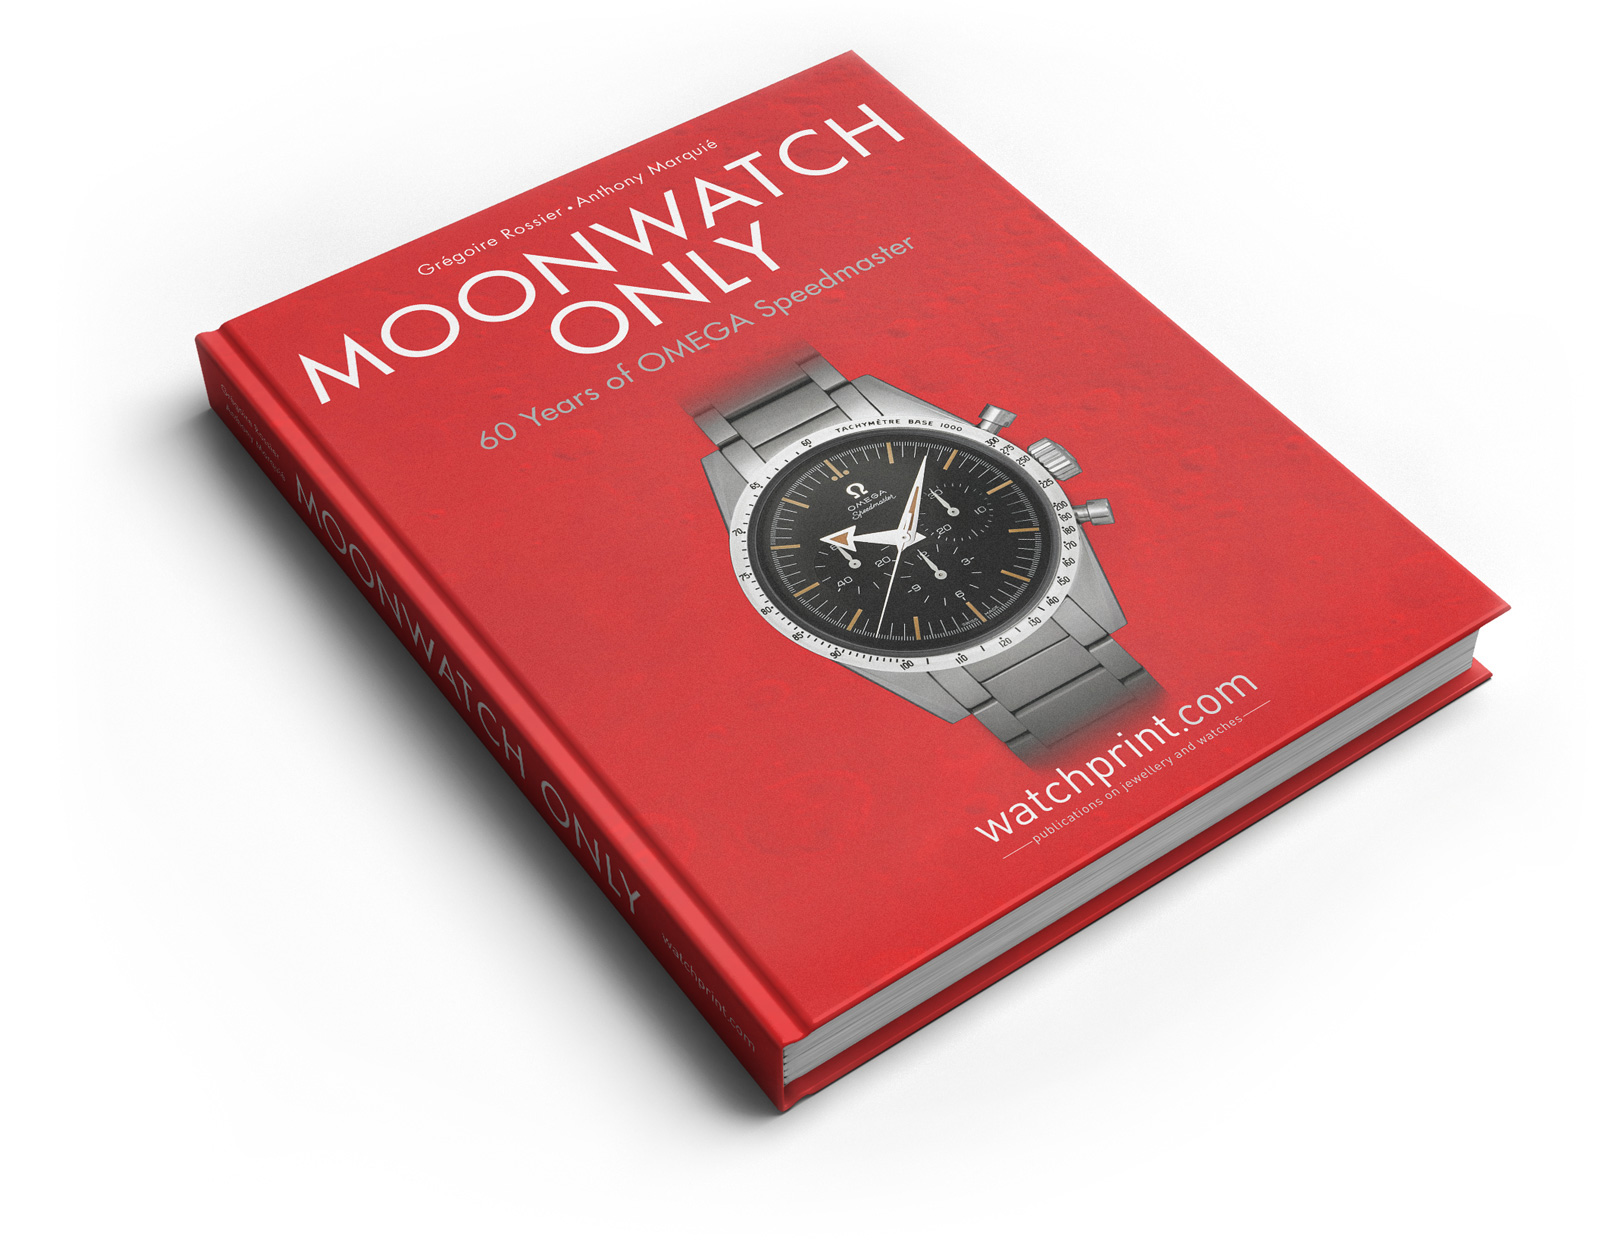 moonwatch-only-book-speedmaster-professional-omega-2.jpg